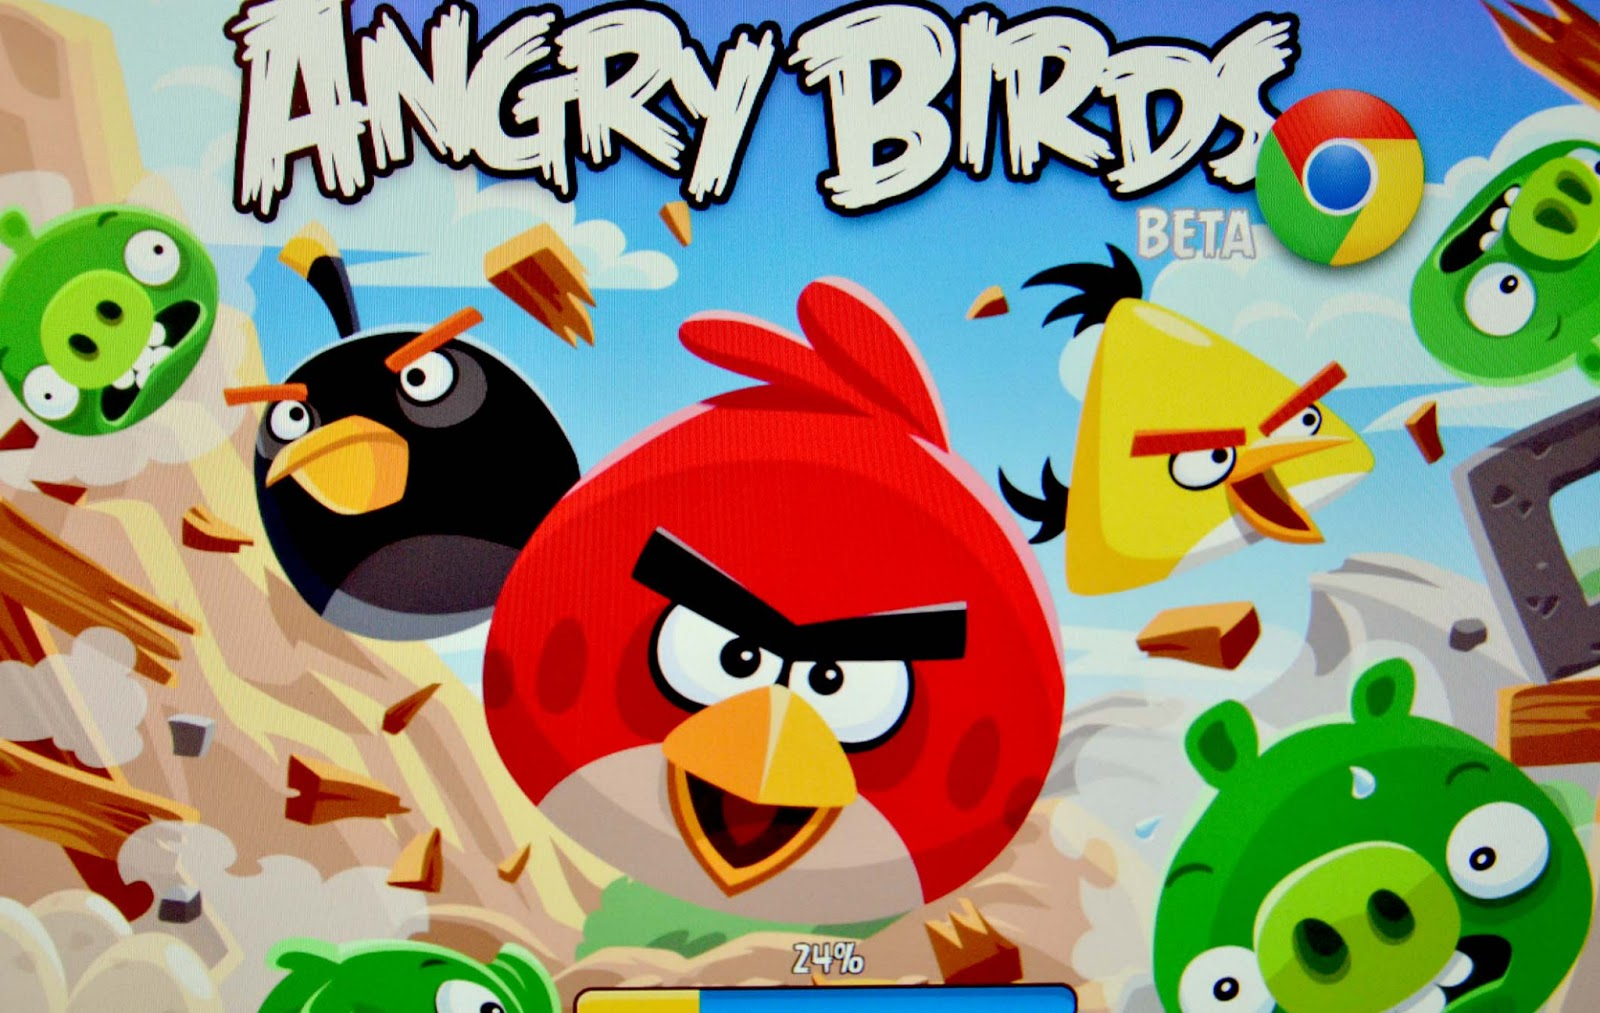 Angry Birds Download (2020 Latest) for Windows 10, 8, 7